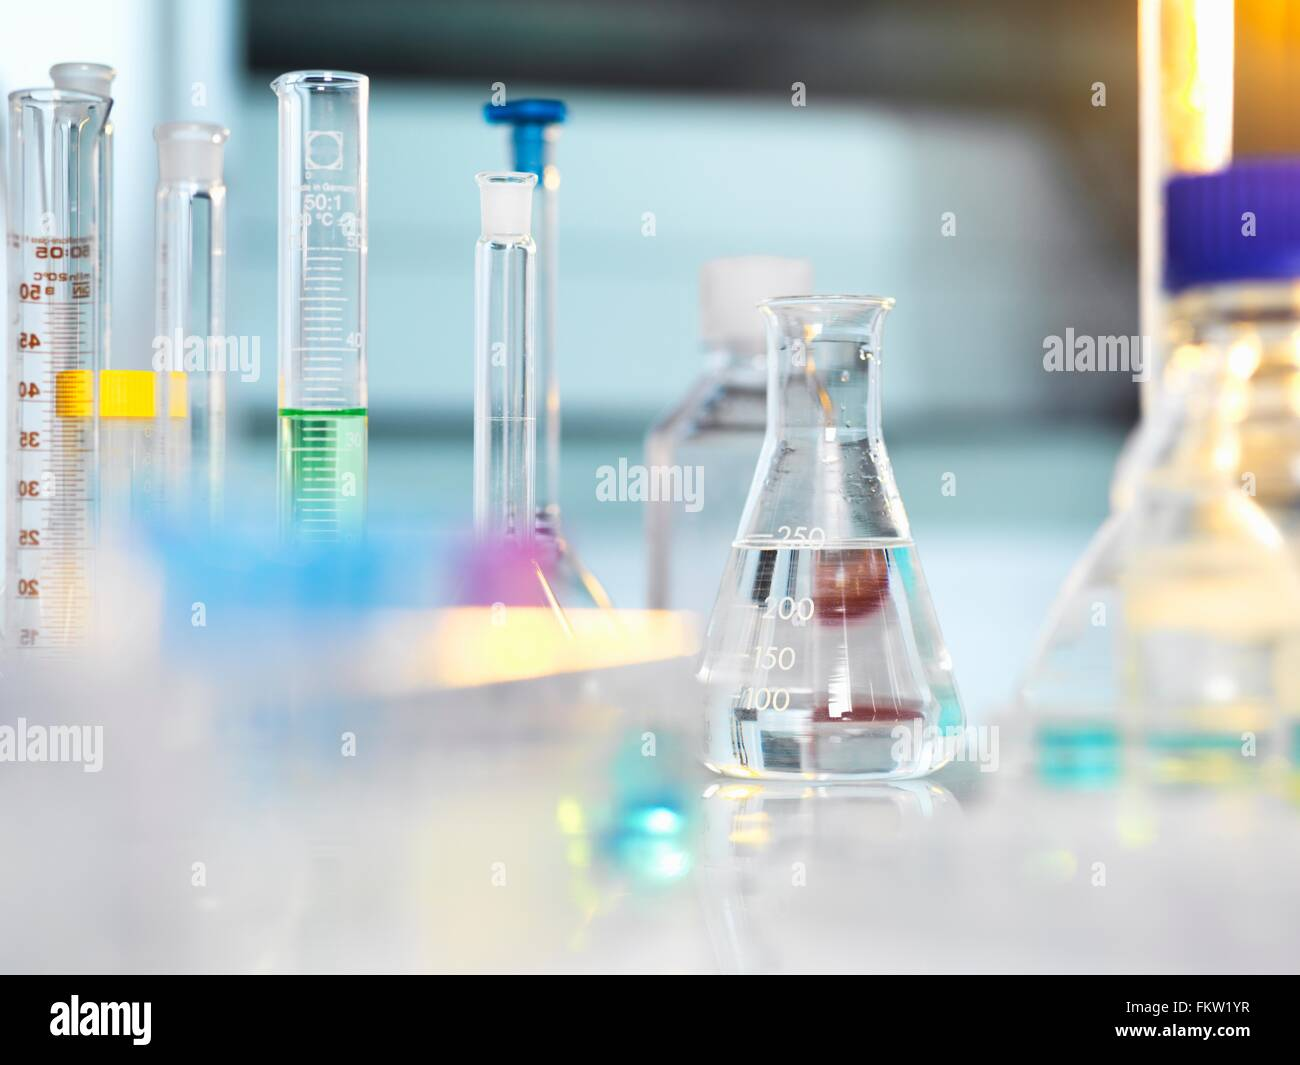 Scientific apparatus and glassware on laboratory bench awaiting experiment - Stock Image